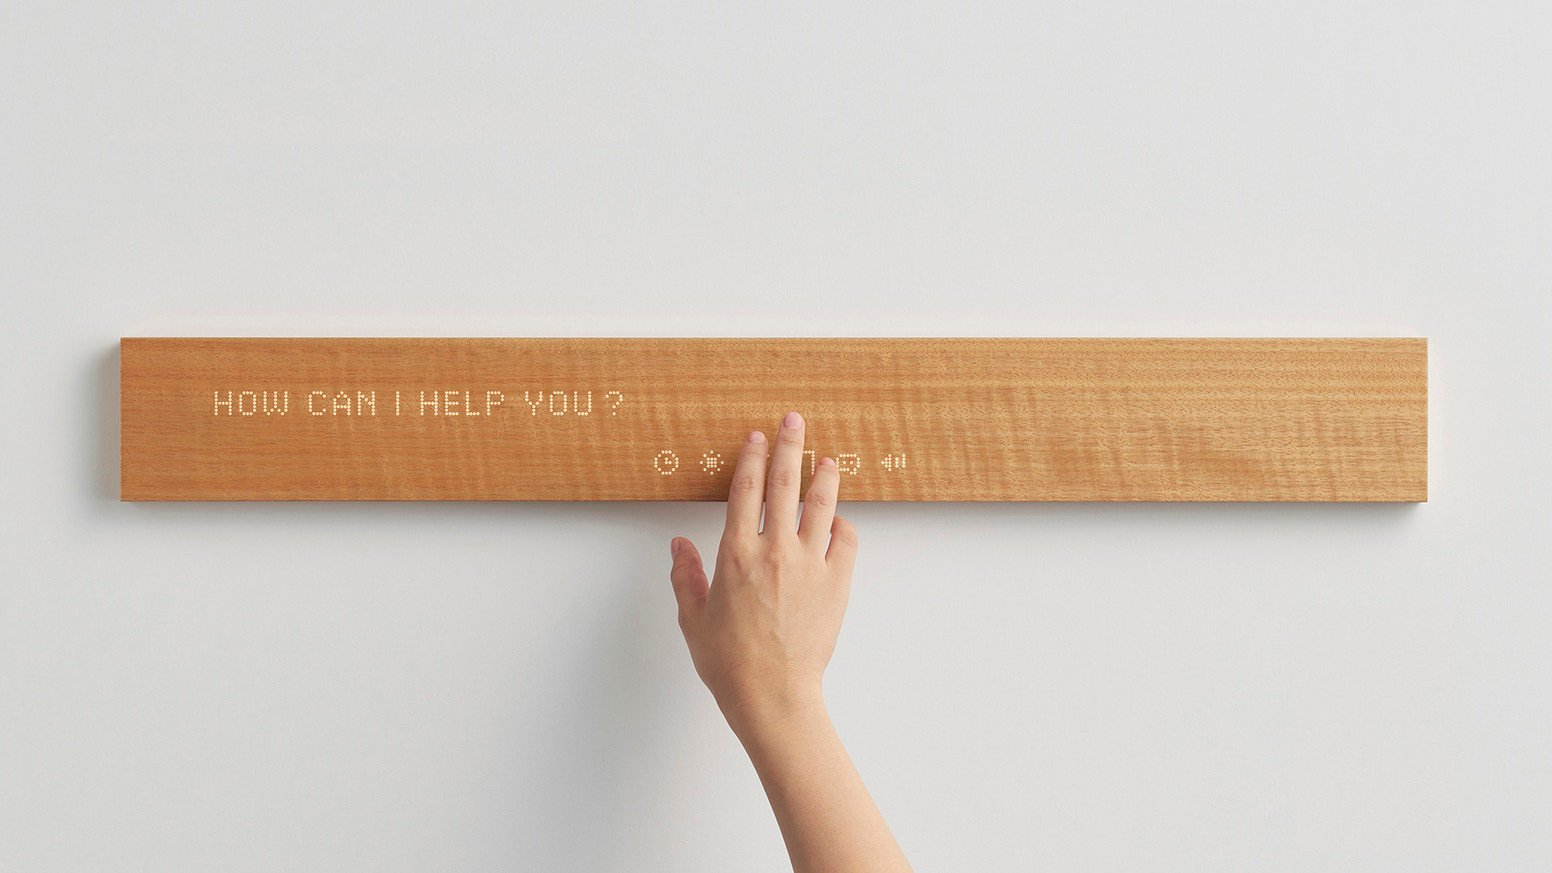 Mui's home hub is an internet-connected plank of wood